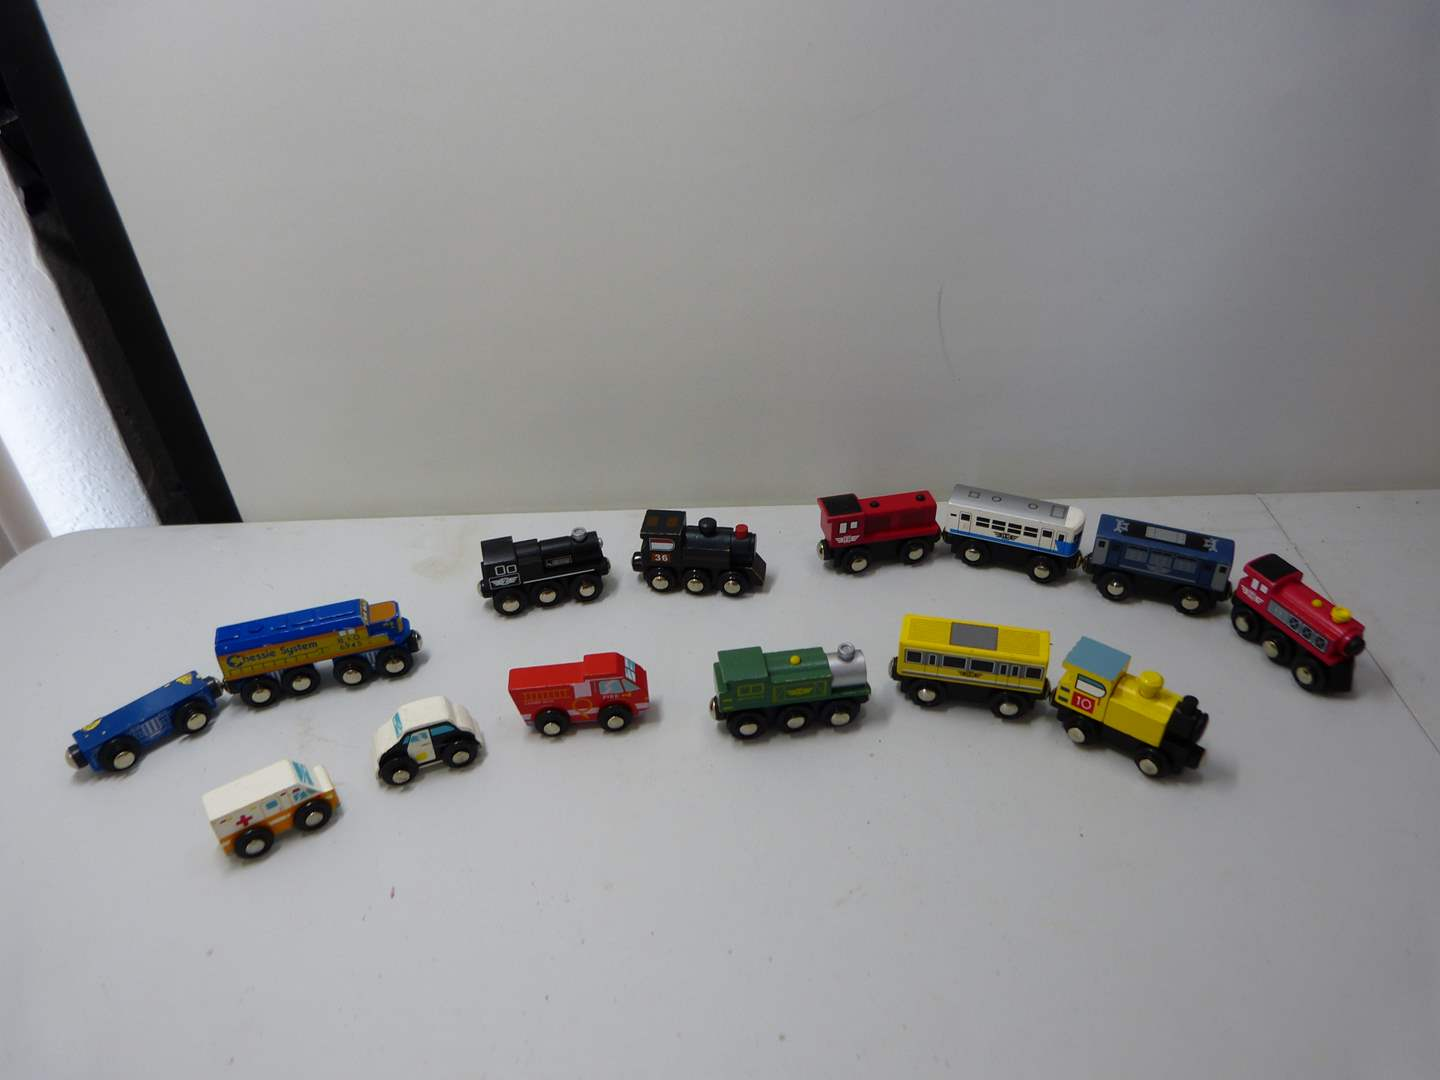 Lot # 231  Large collection of Thomas the Train trains (main image)